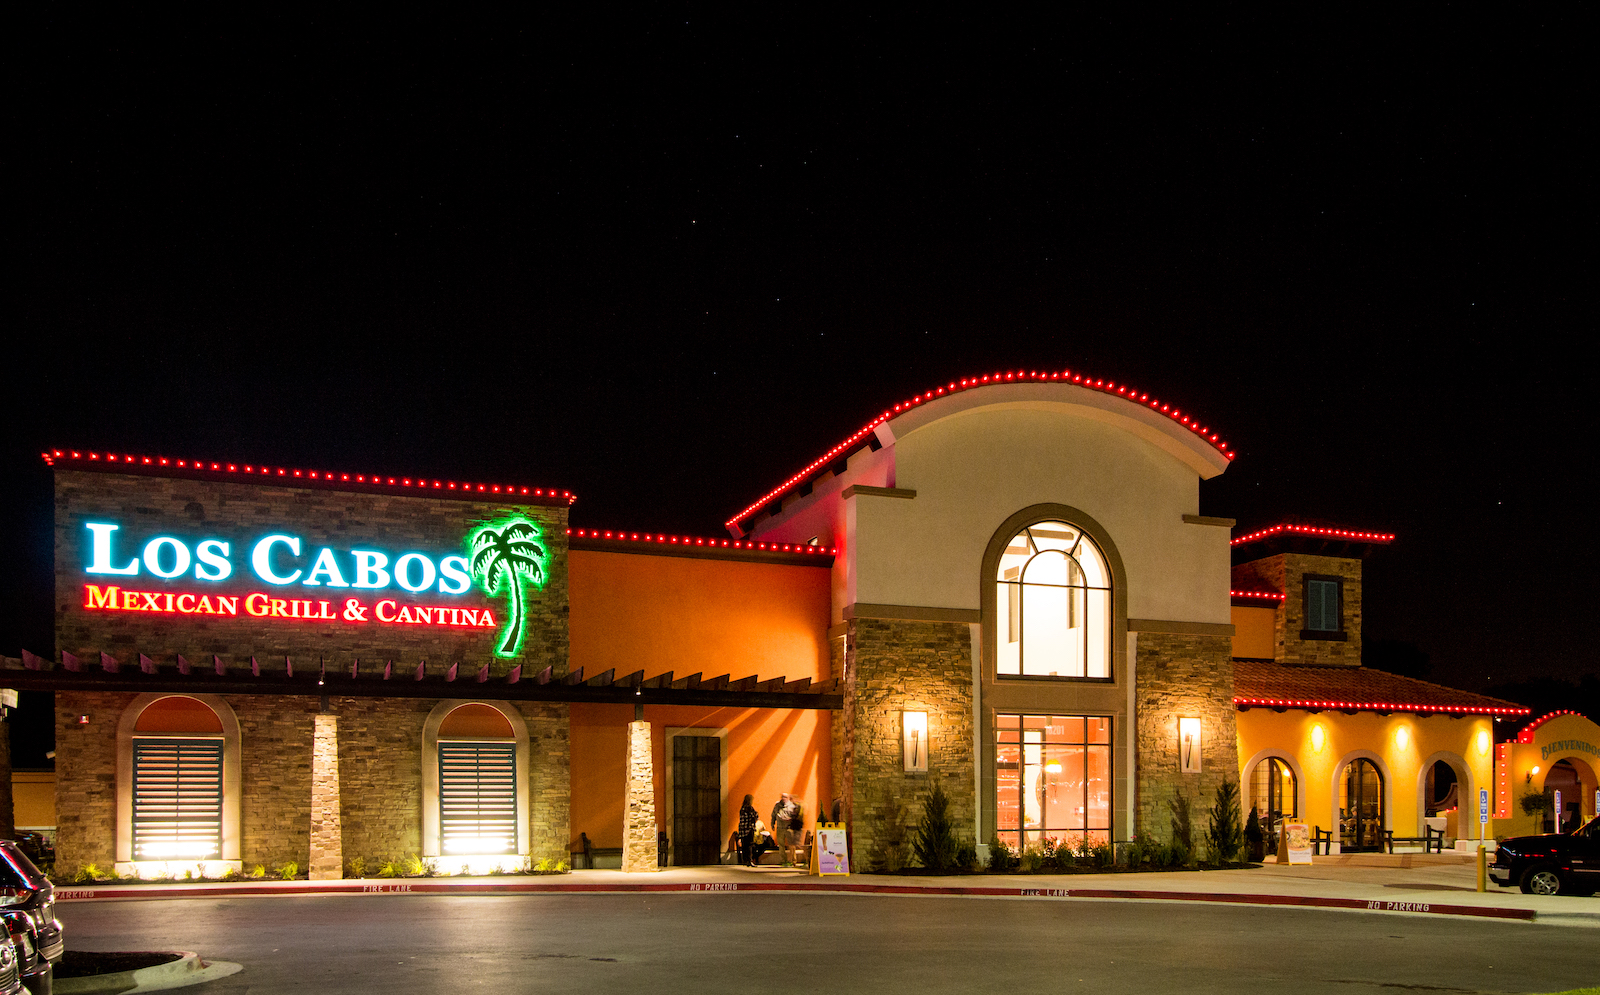 Los Cabos Mexican Grill and Cantina